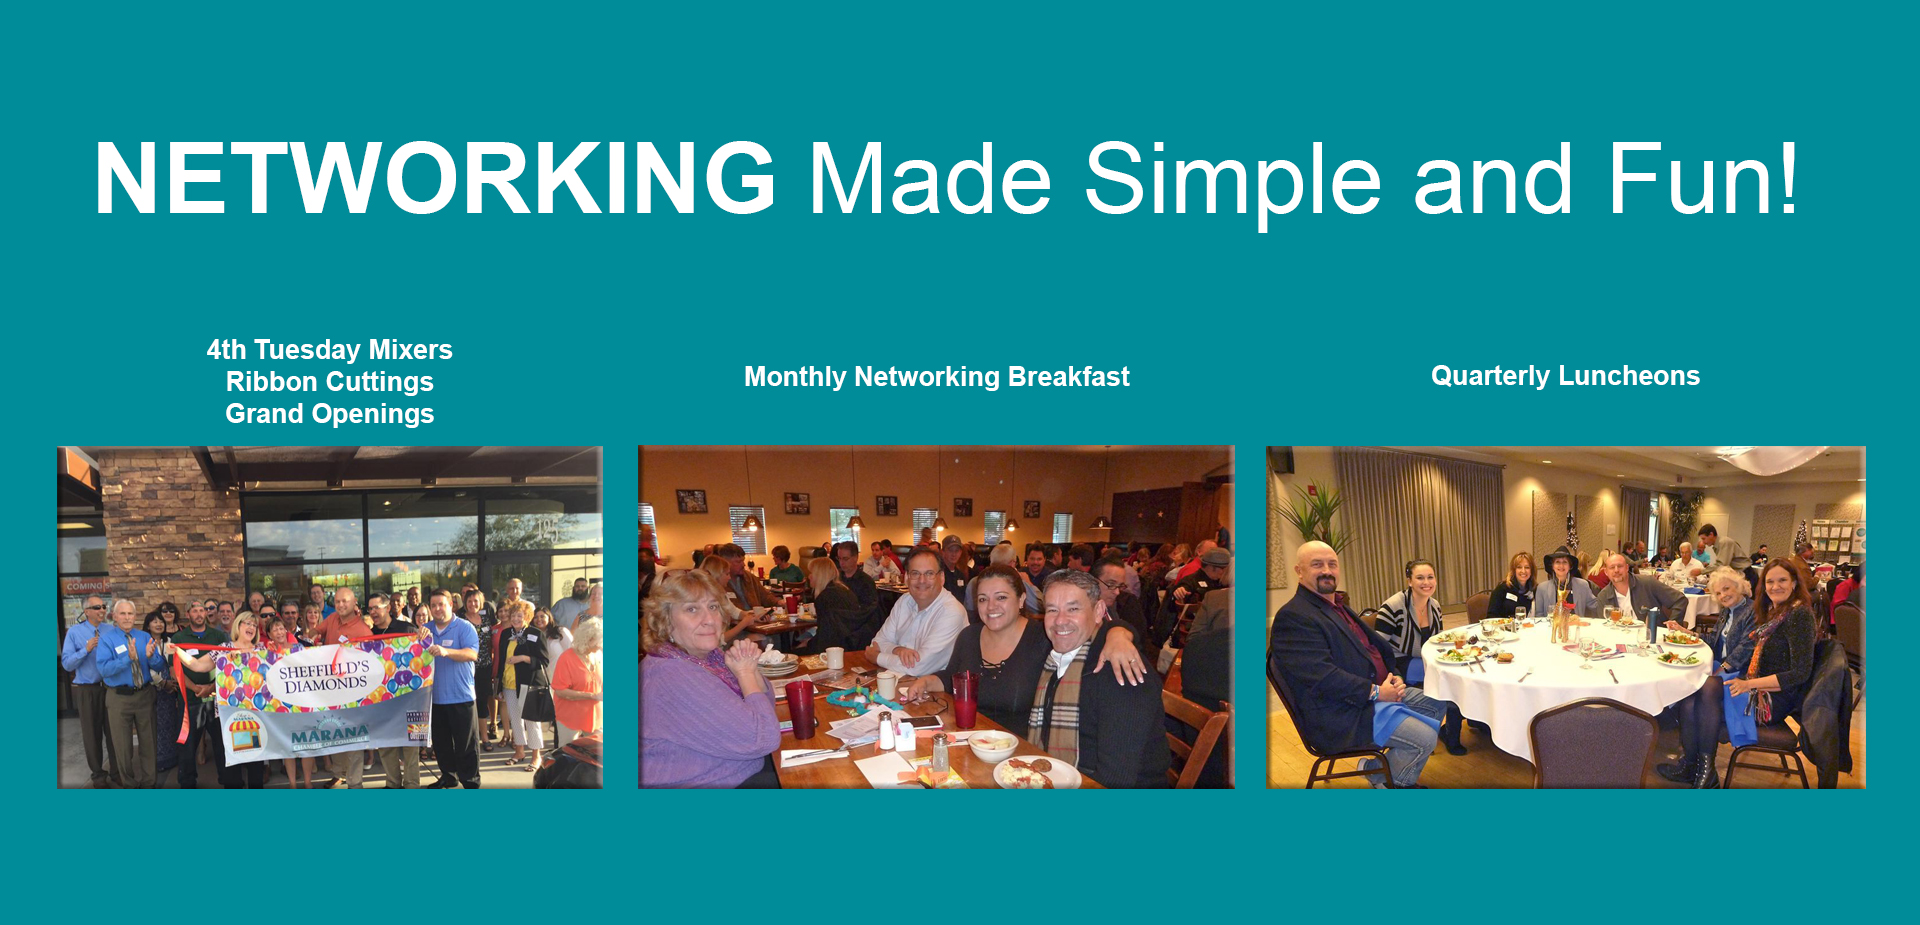 Networking Made Simple